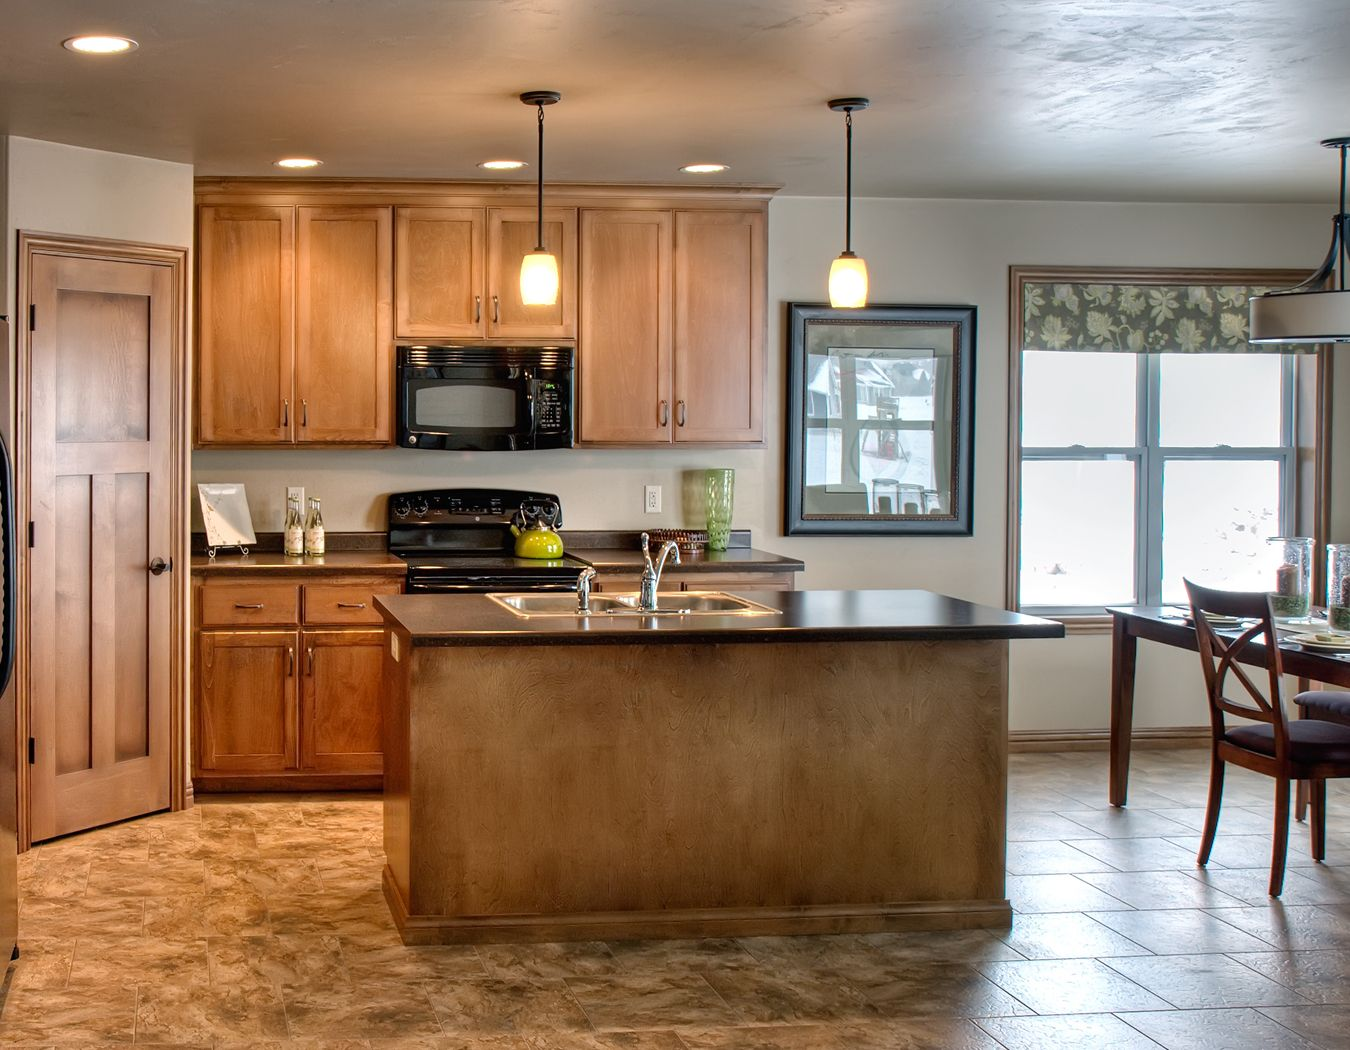 Quality Custom Kitchen Cabinetry Prestige Custom Cabinetry And Millwork Custom Kitchen Kitchen Kitchen Cabinetry